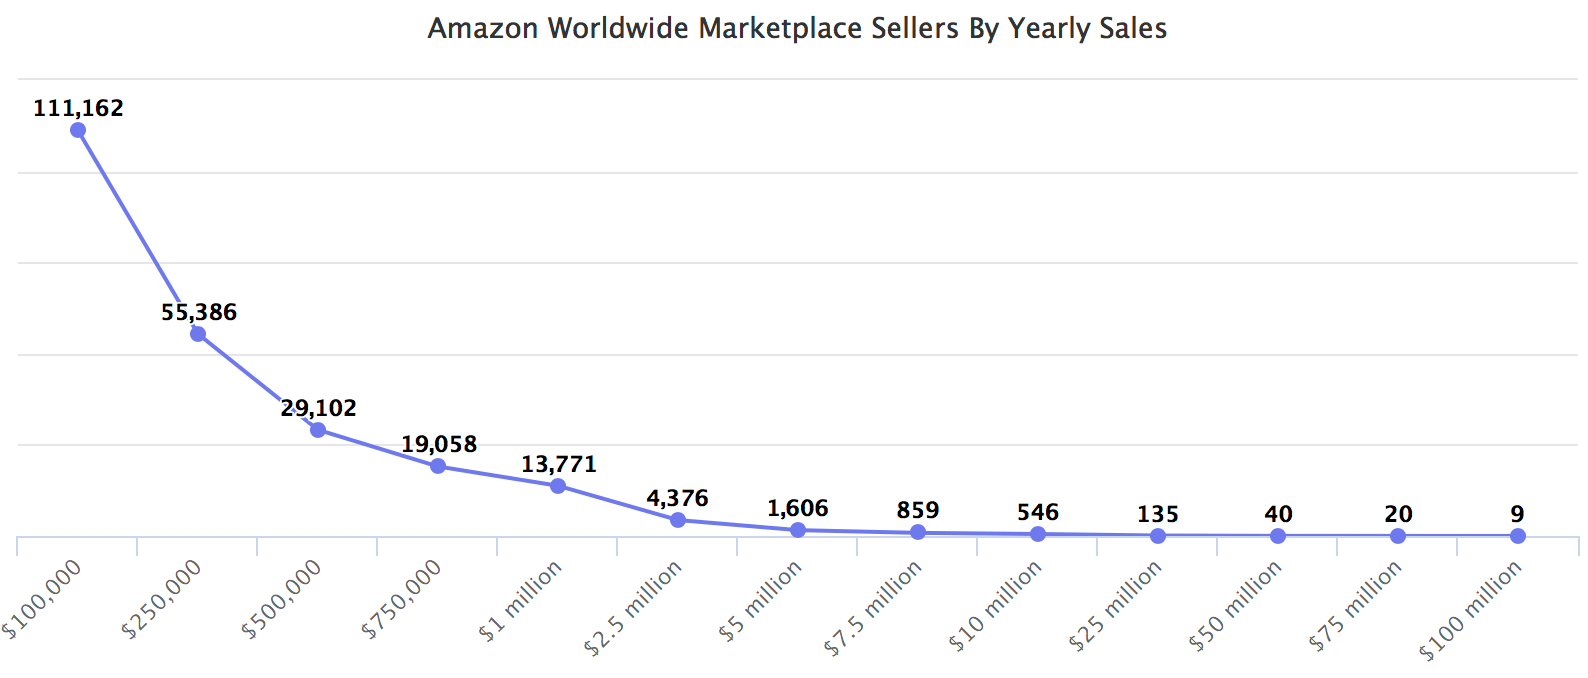 Amazon Worldwide Marketplace Sellers By Yearly Sales